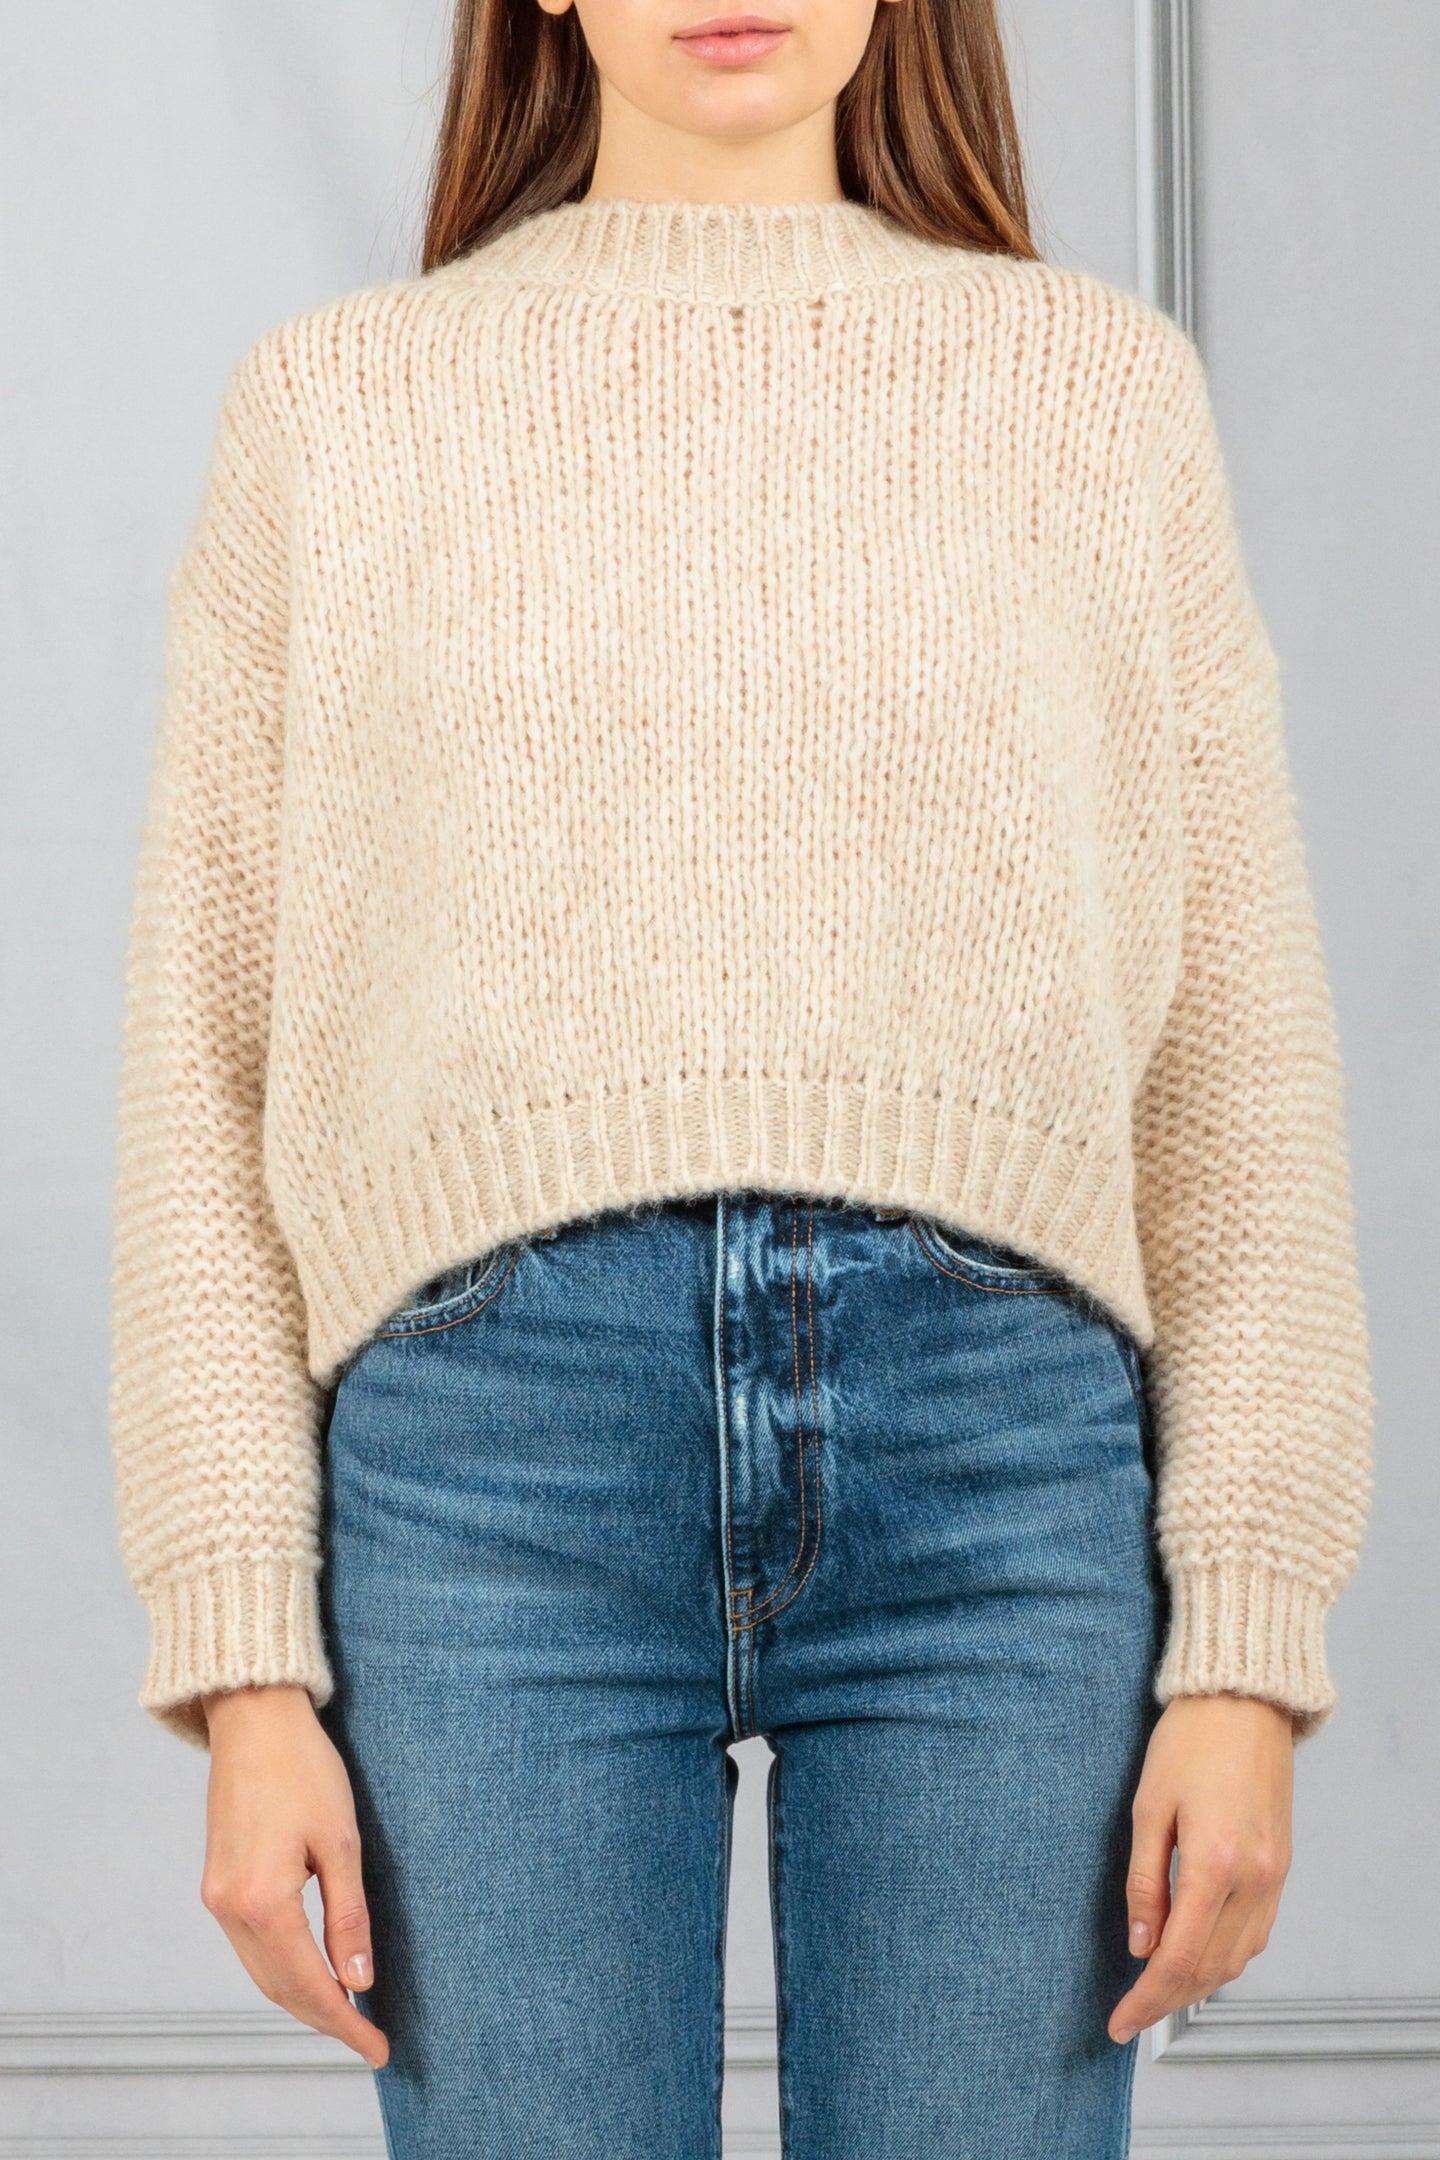 Boxy Open Knit Pullover Sweater - Beige